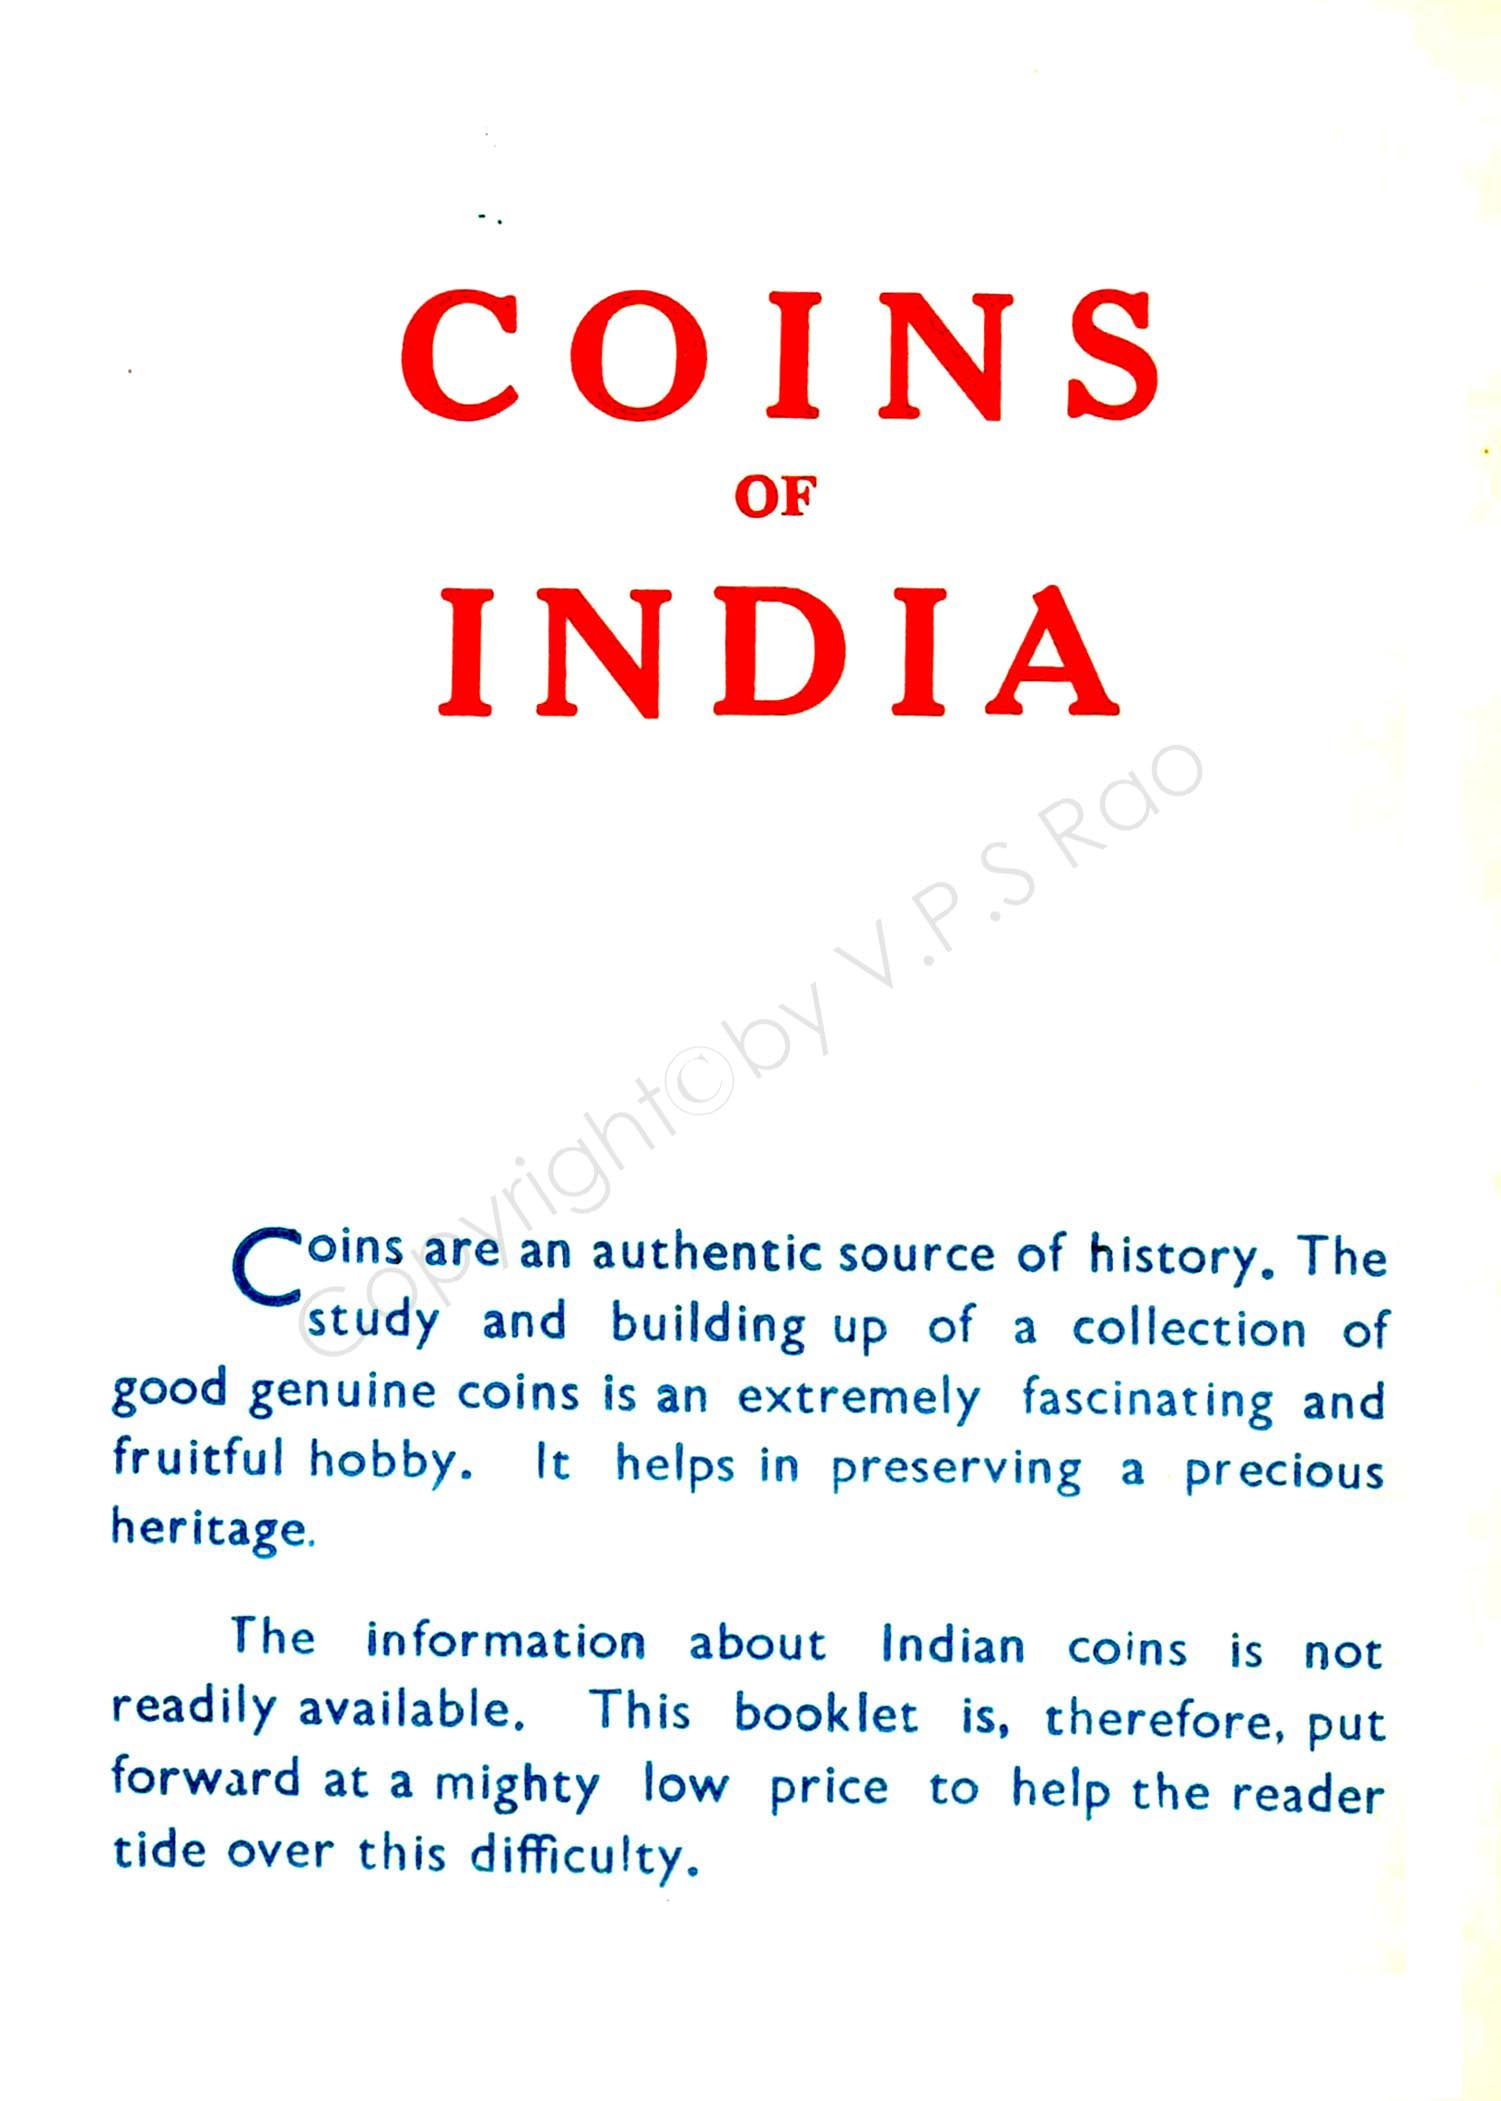 Coins of Inida-11 copy